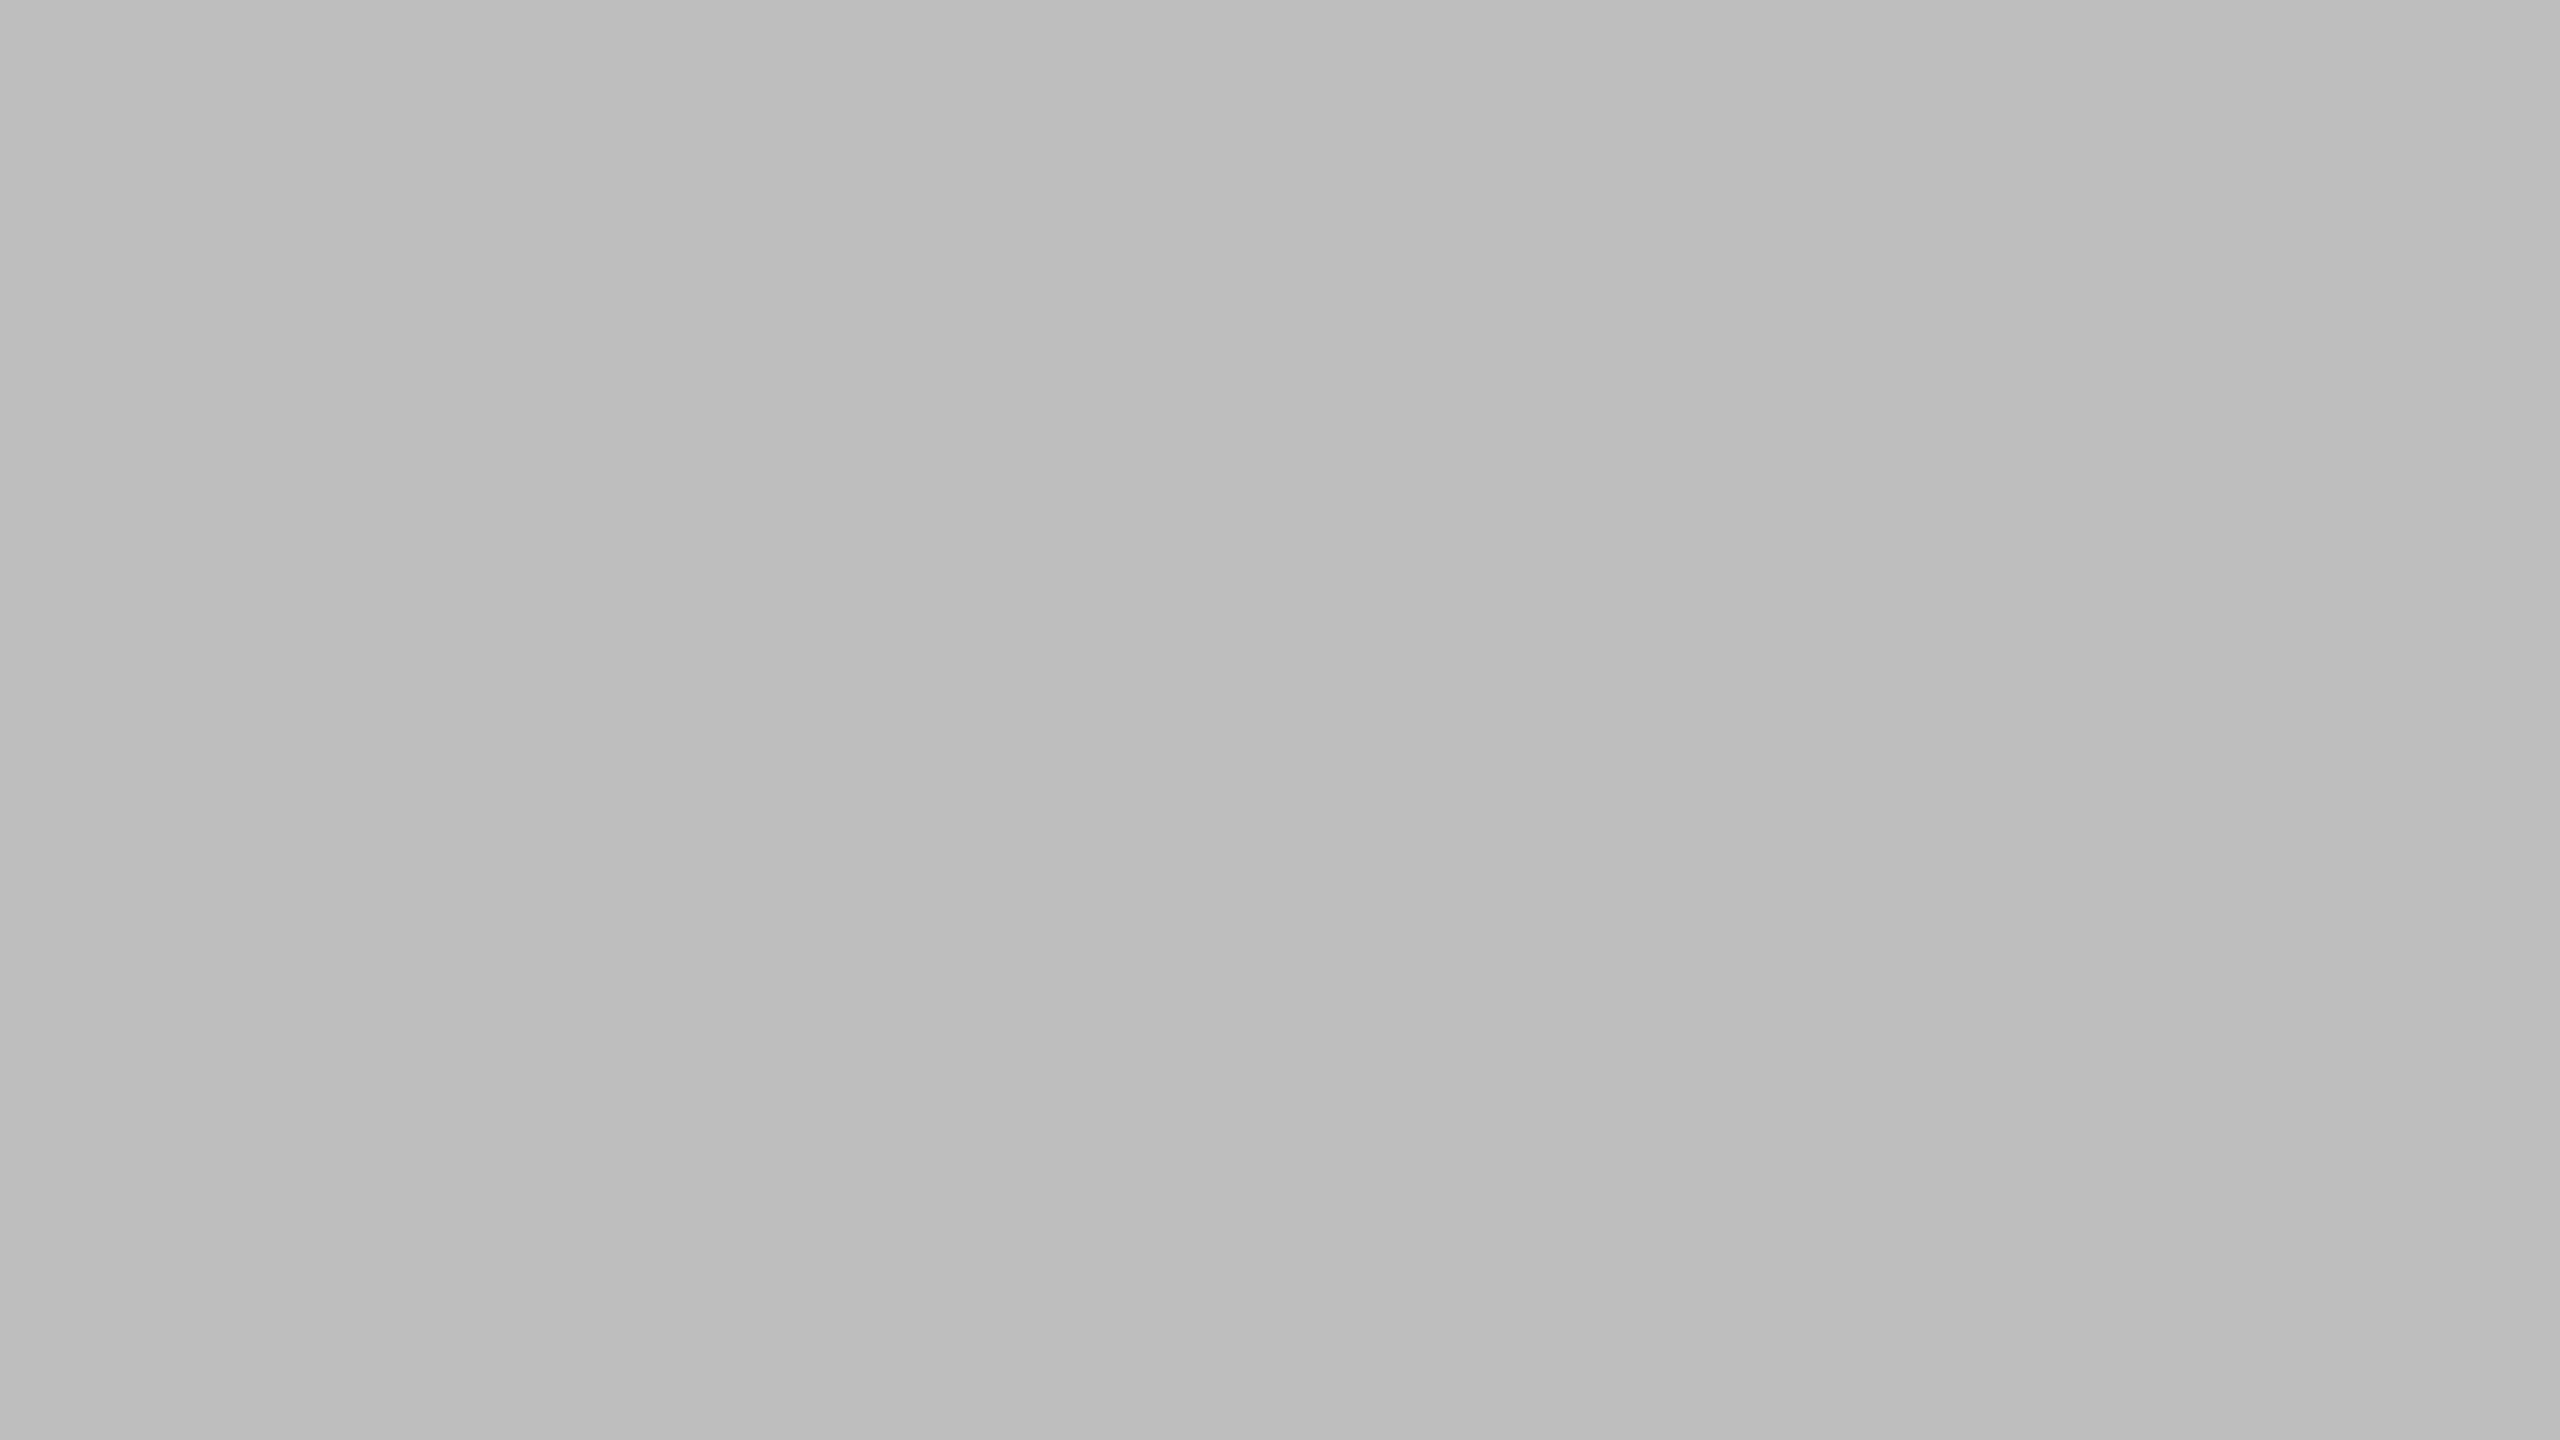 2560x1440 Gray X11 Gui Gray Solid Color Background